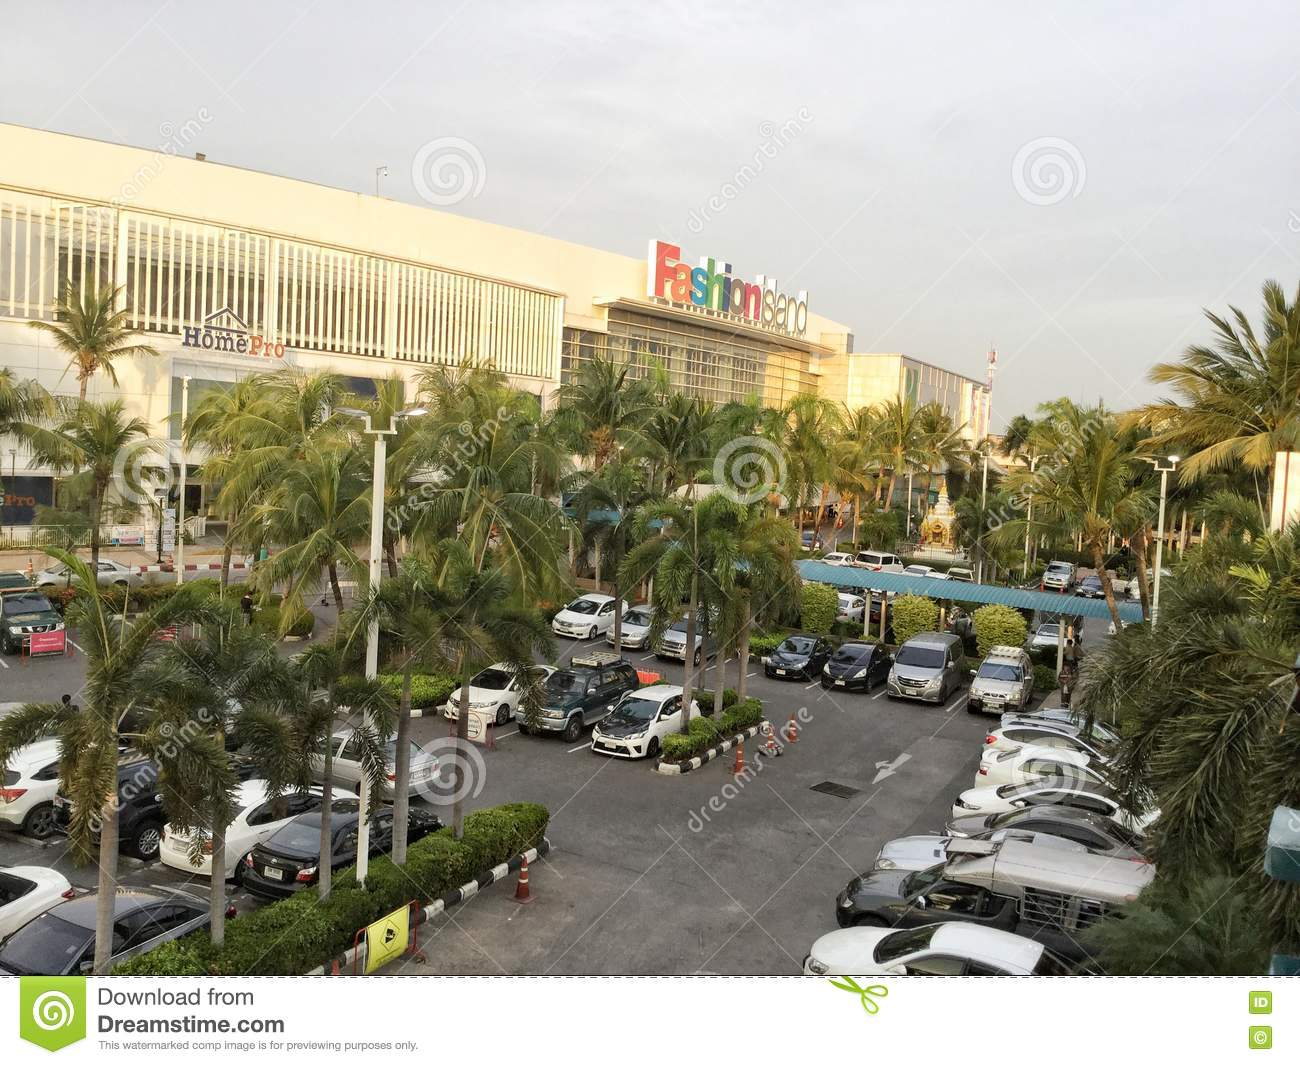 Fashion Island is an upscale open-air lifestyle center in Newport Beach, California. Fashion Island is owned by The Irvine Company.